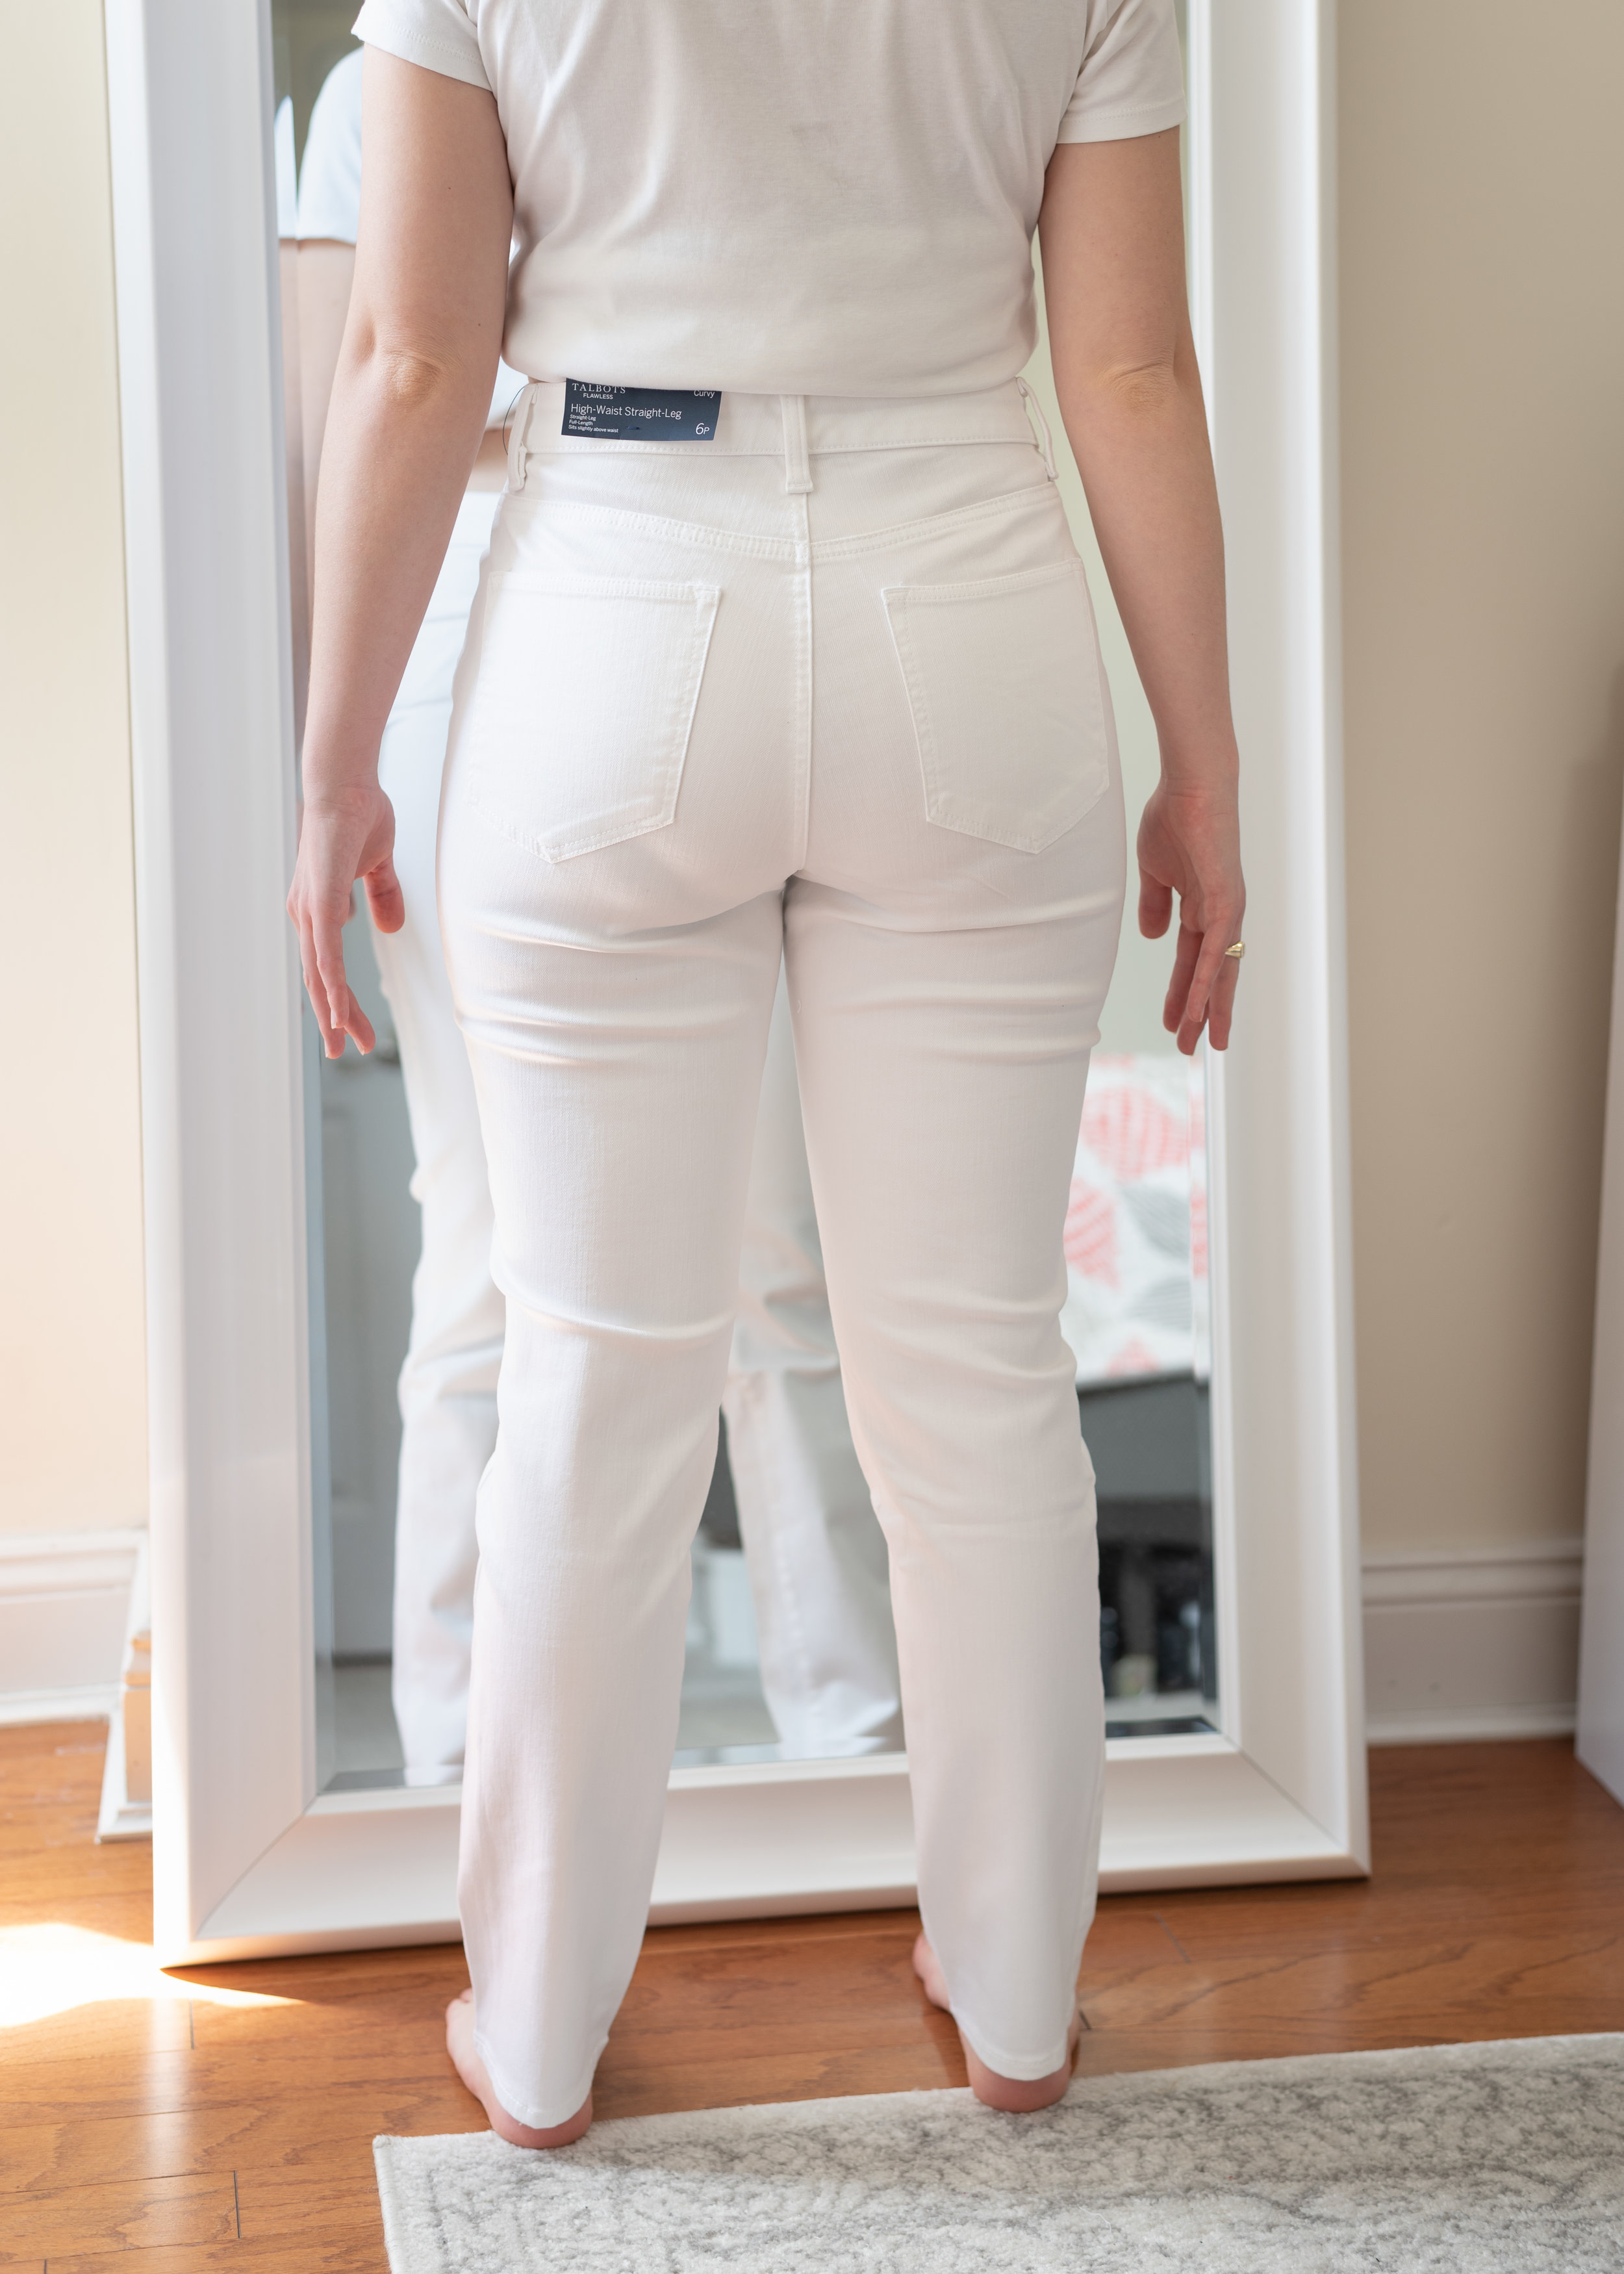 Talbots High-Waisted Curvy Fit Straight Leg Jeans - Size 6 Petite